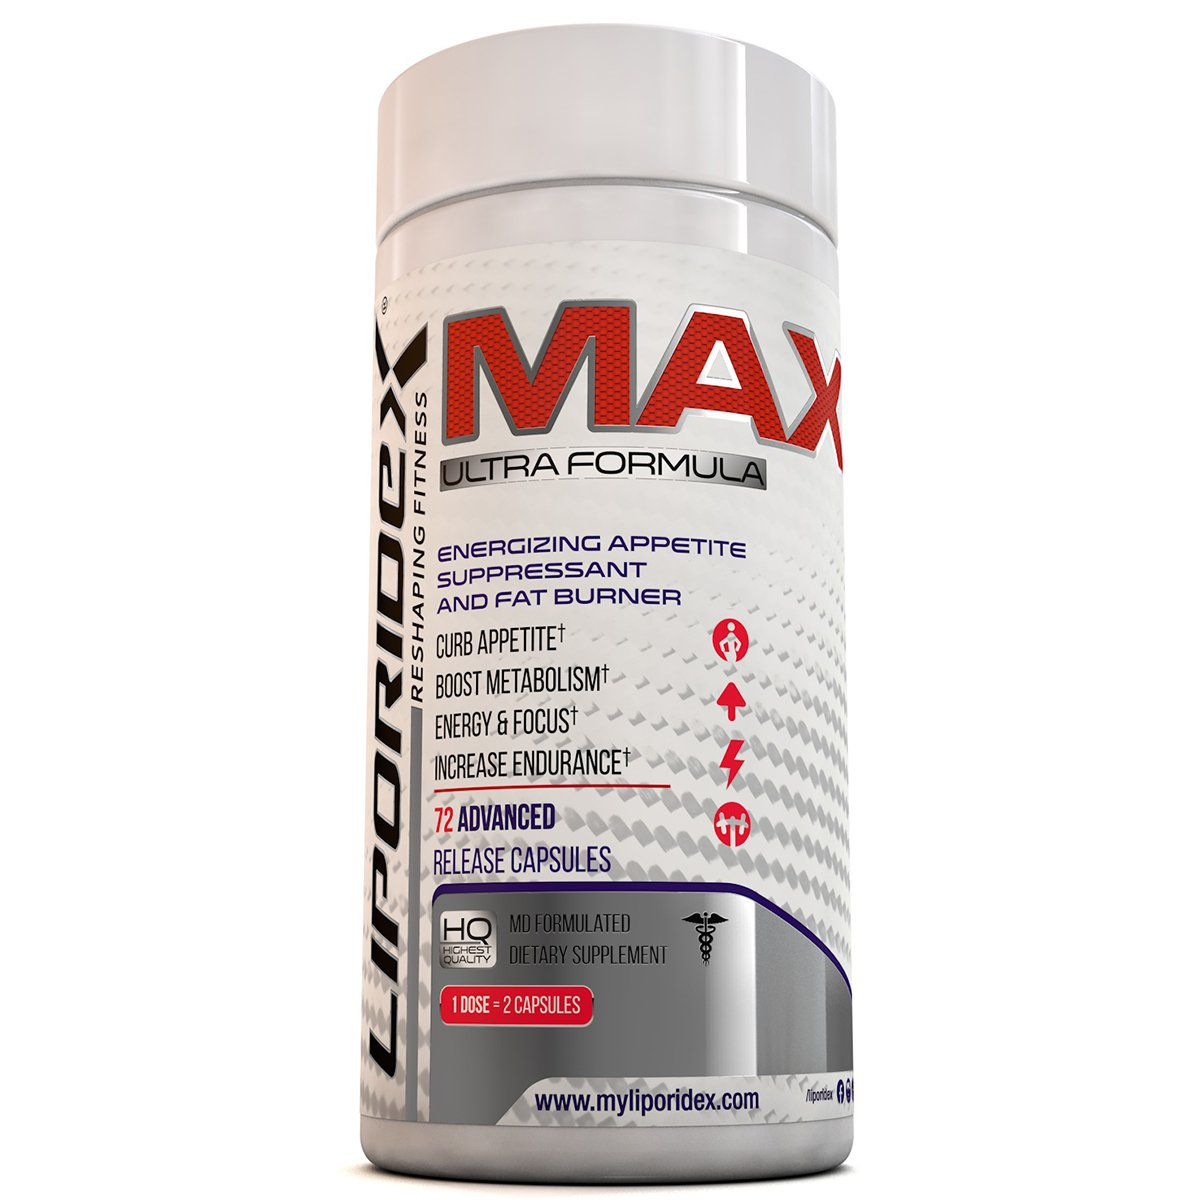 Liporidex MAX thermogenic capsules